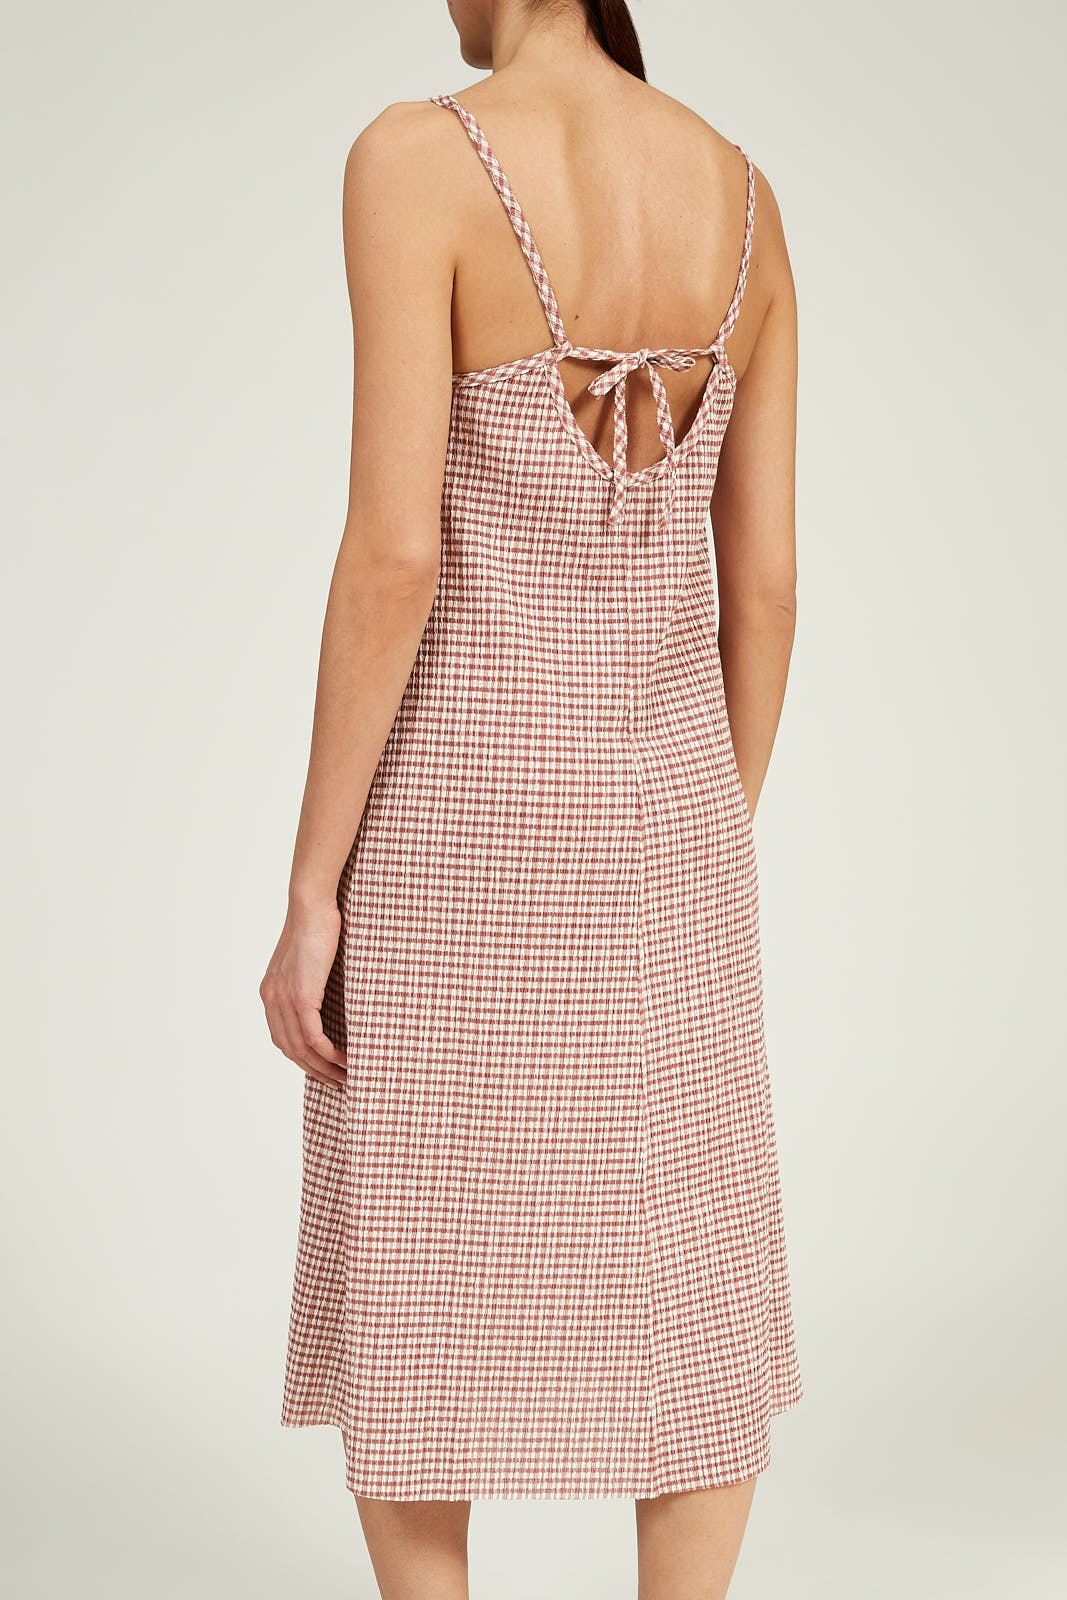 Slip Dress in Gingham